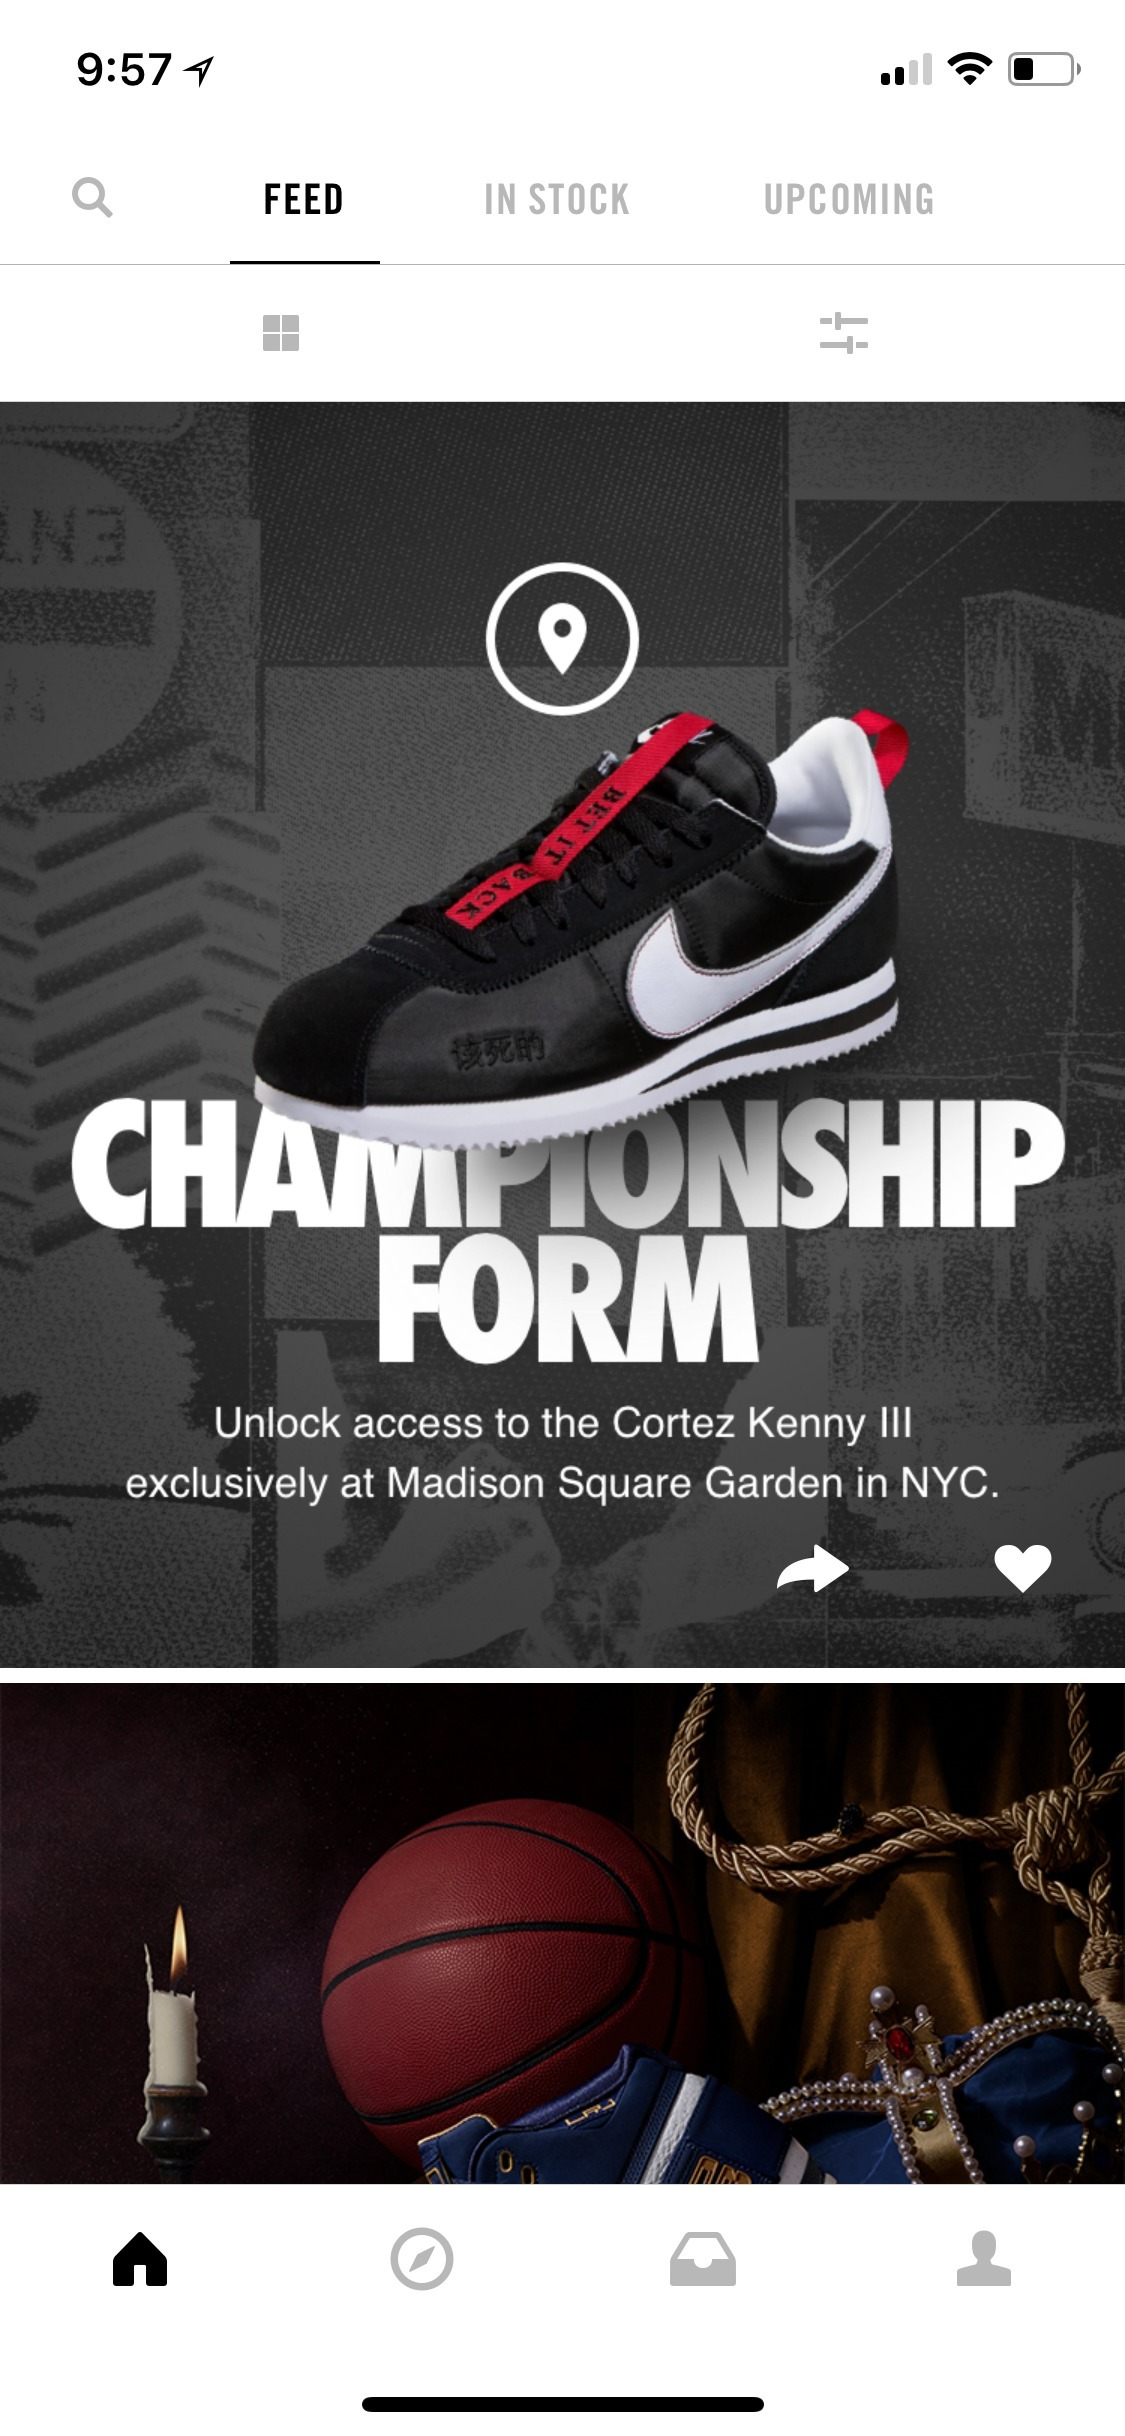 Example of App Design for iOS with the following features: content (image dominant), navigation ~ menu, feed, tab bar, segmented control, icon button. App by SNKRS (iPhone X)